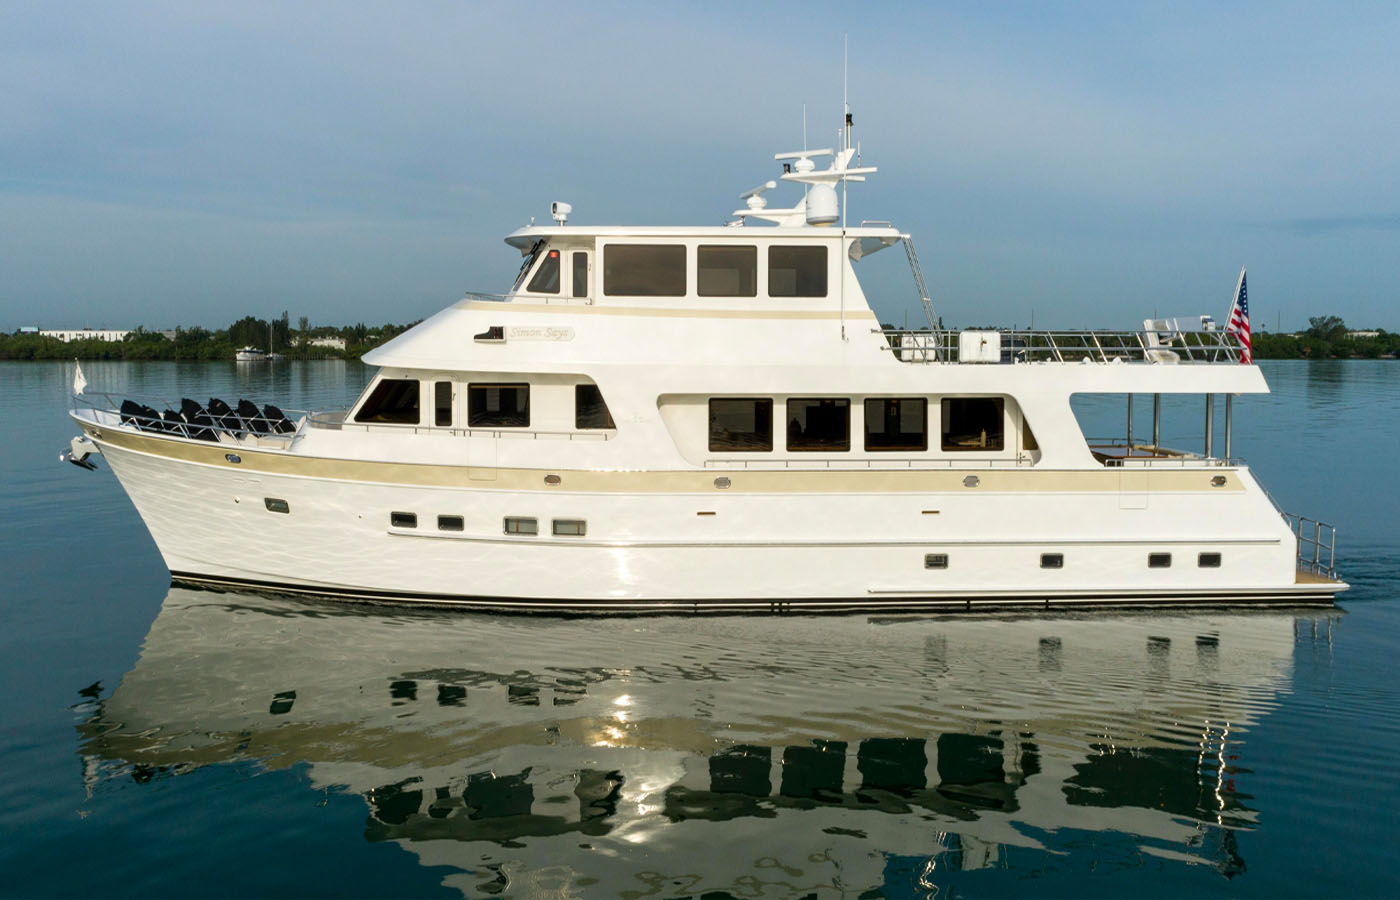 Outer Reef Yachts 86 Superyacht Highlight [Boat Review + Video]